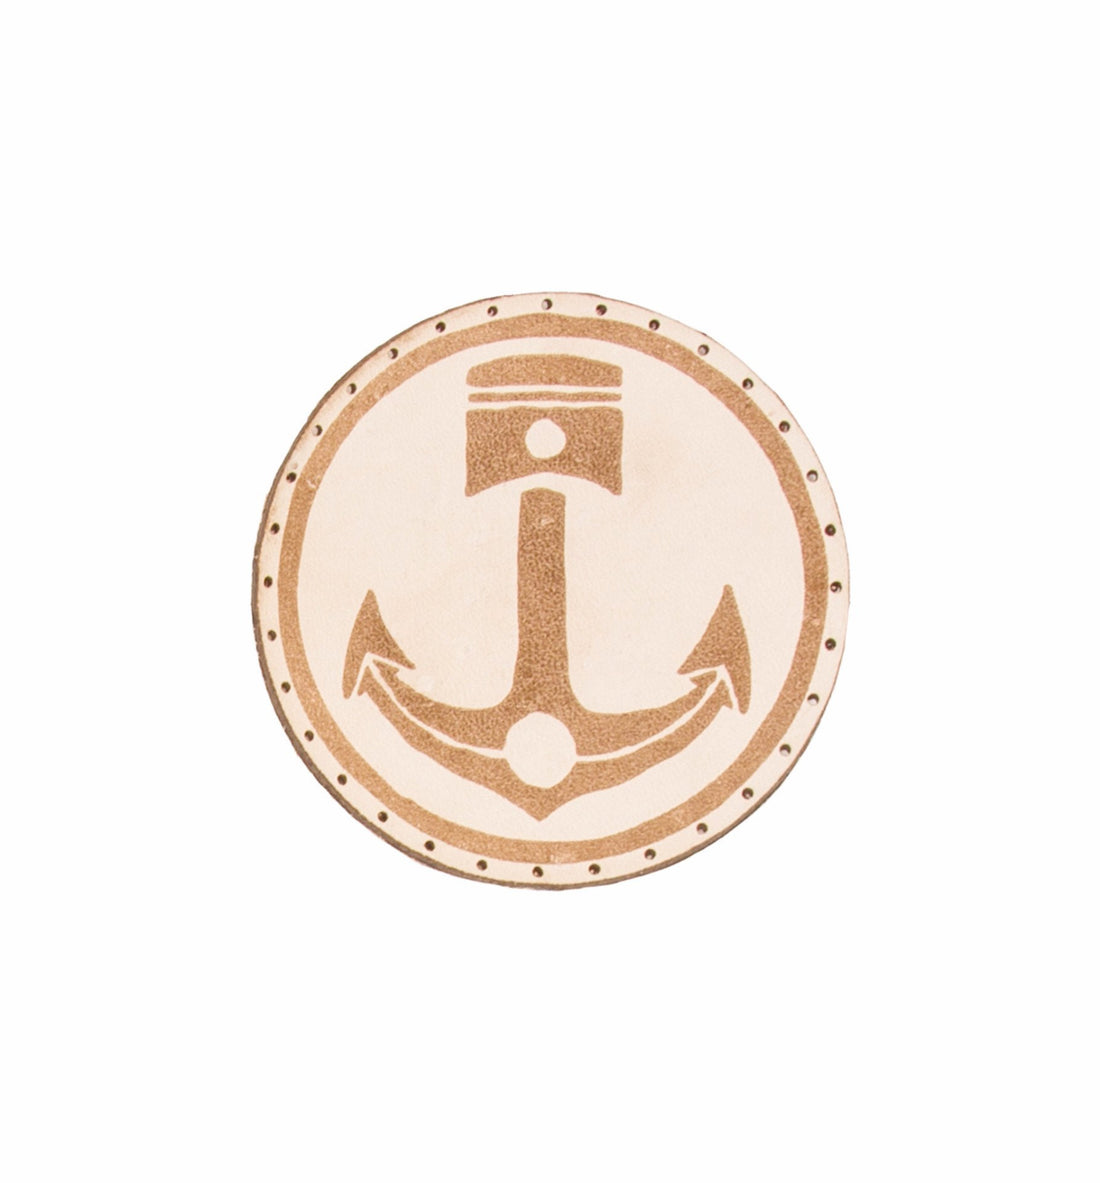 INR Anchor Piston Patch - Accessories: Patches - Iron and Resin